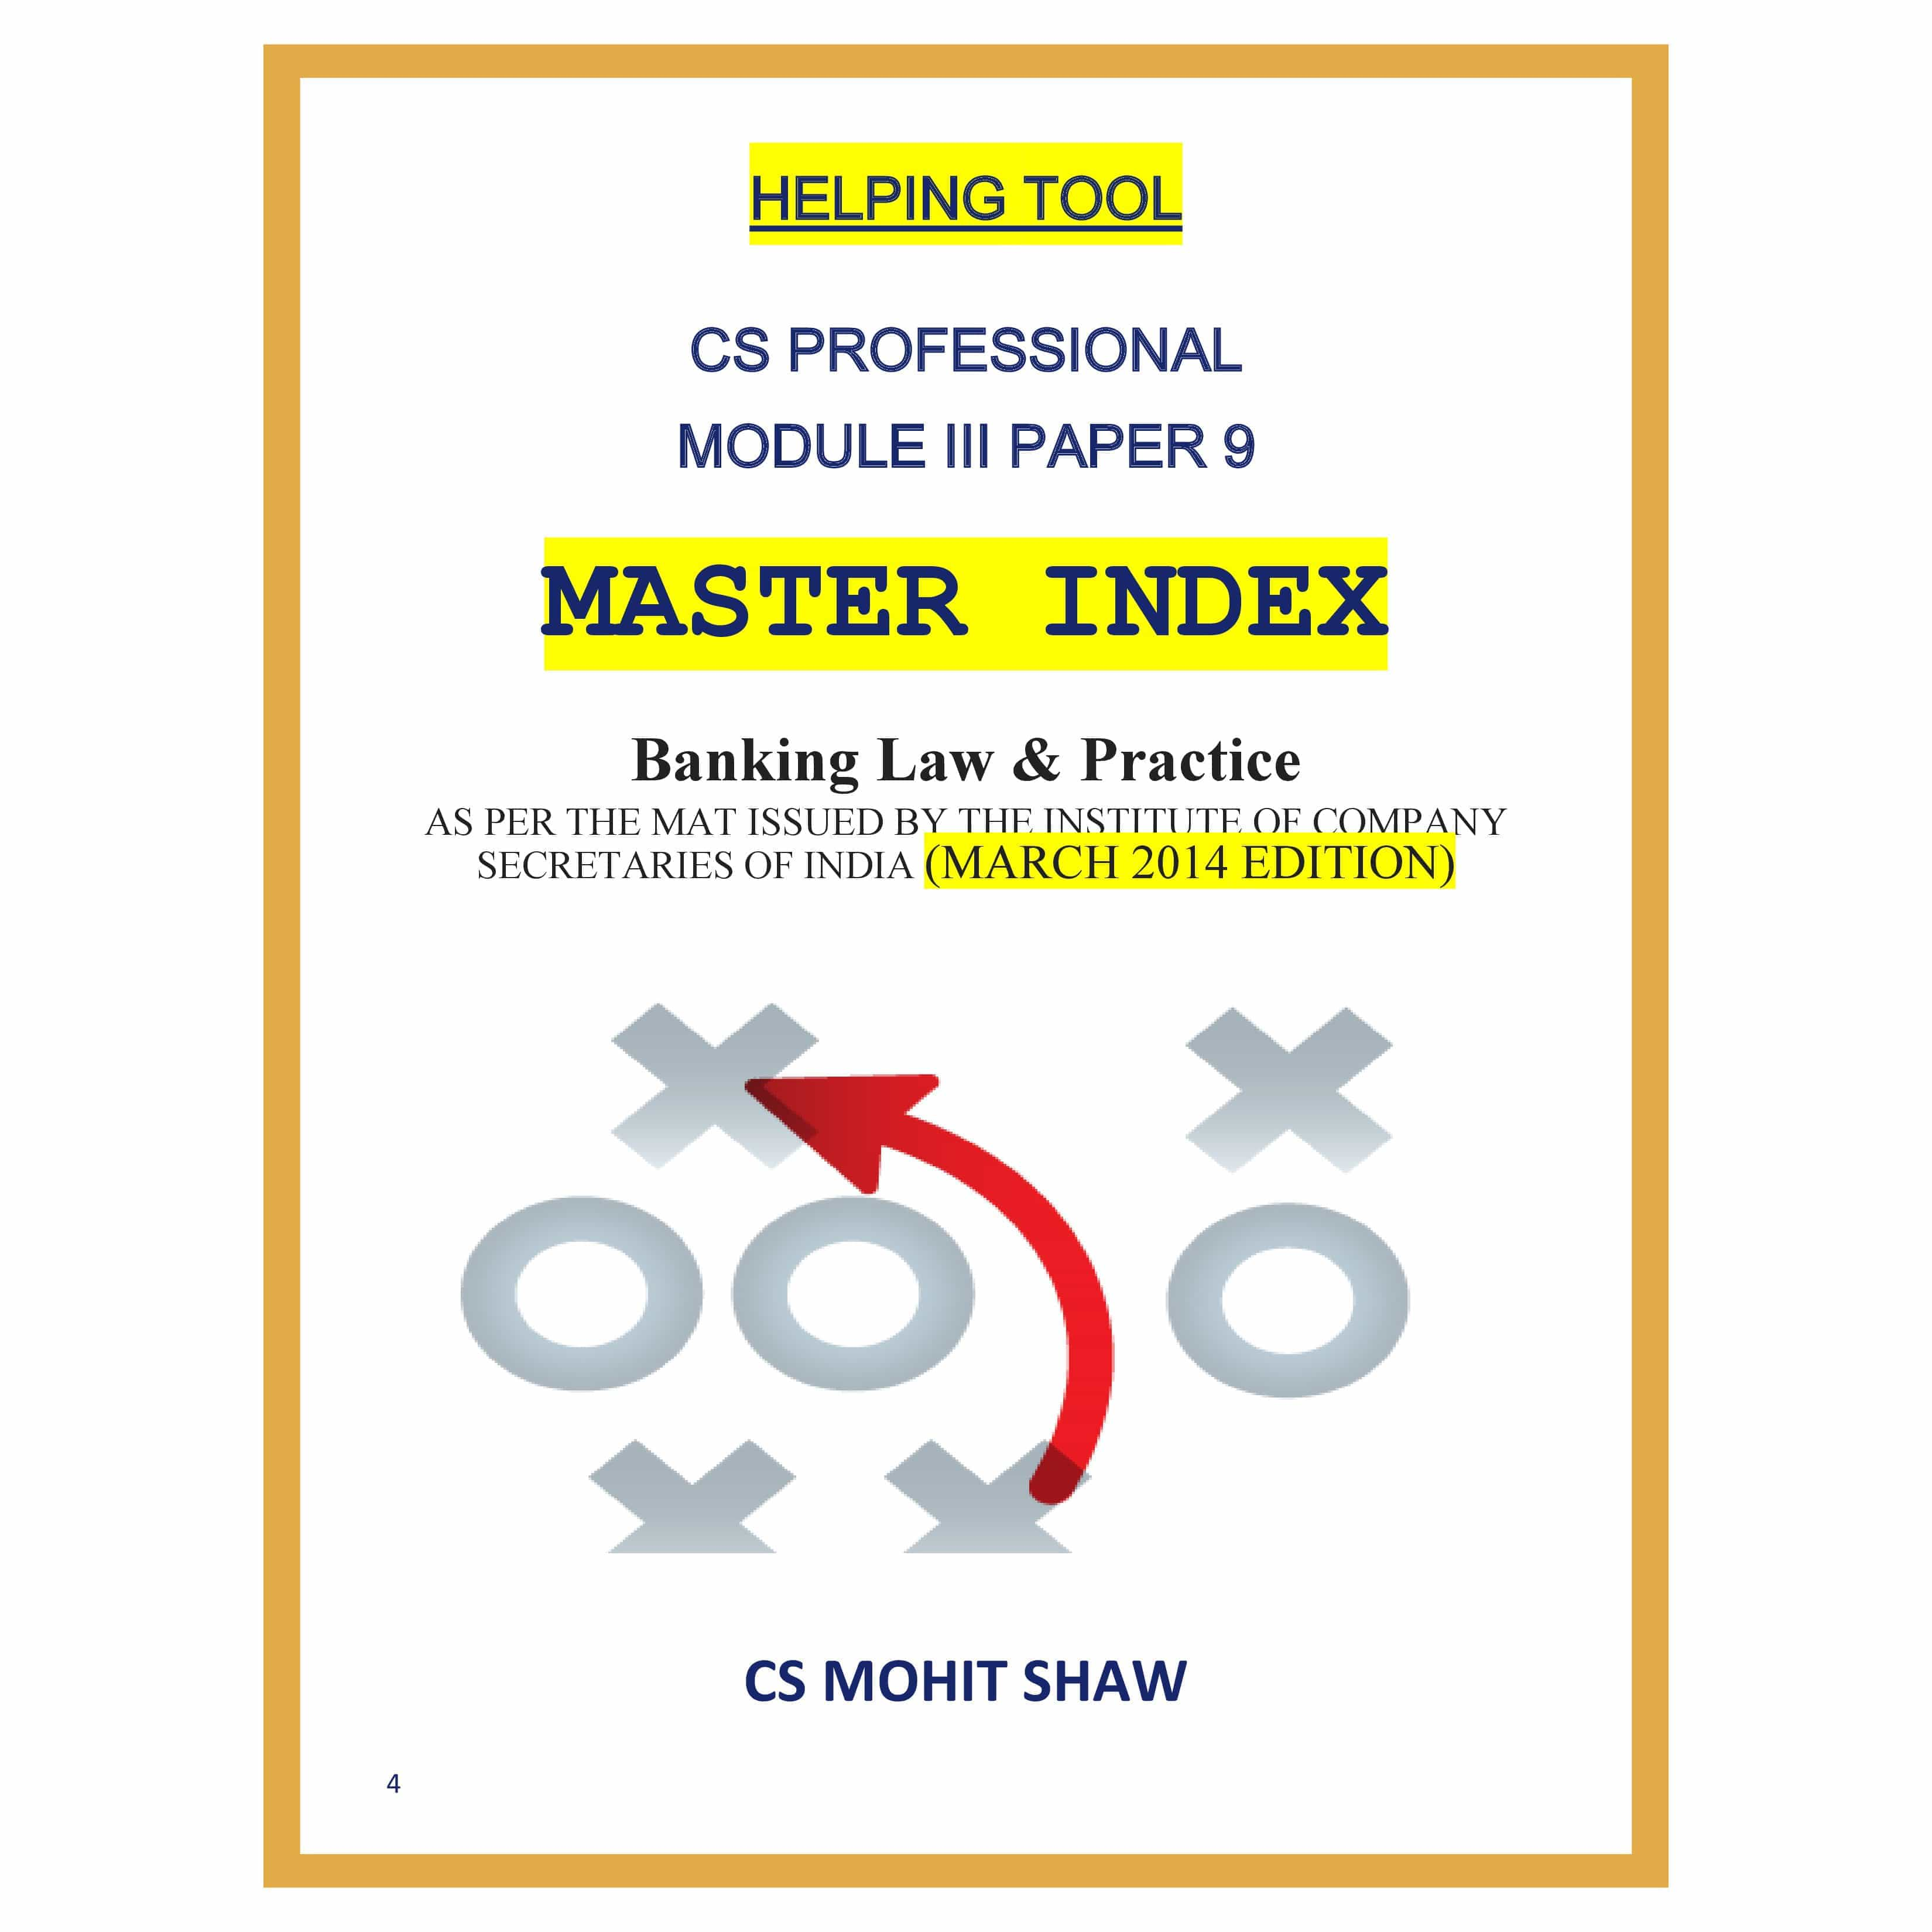 Online Drafting Tool Banking Law And Practice Master Index By Cs Mohit Shaw